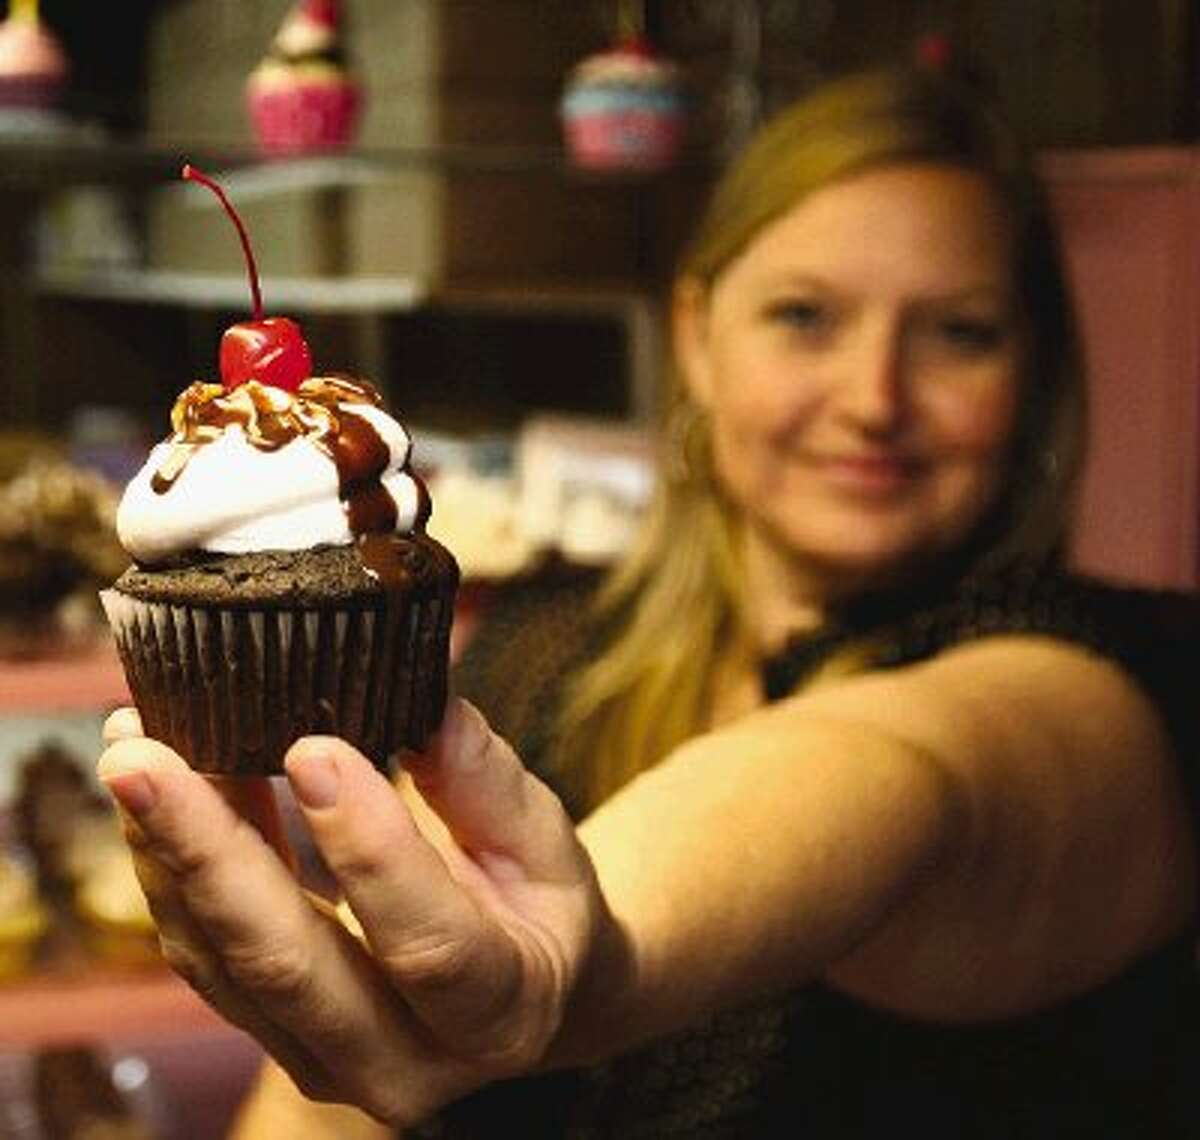 Candyland Sweets owner Ami Fairchild shows off one of the 80 different varieties of specialty cupcakes she makes for customers.